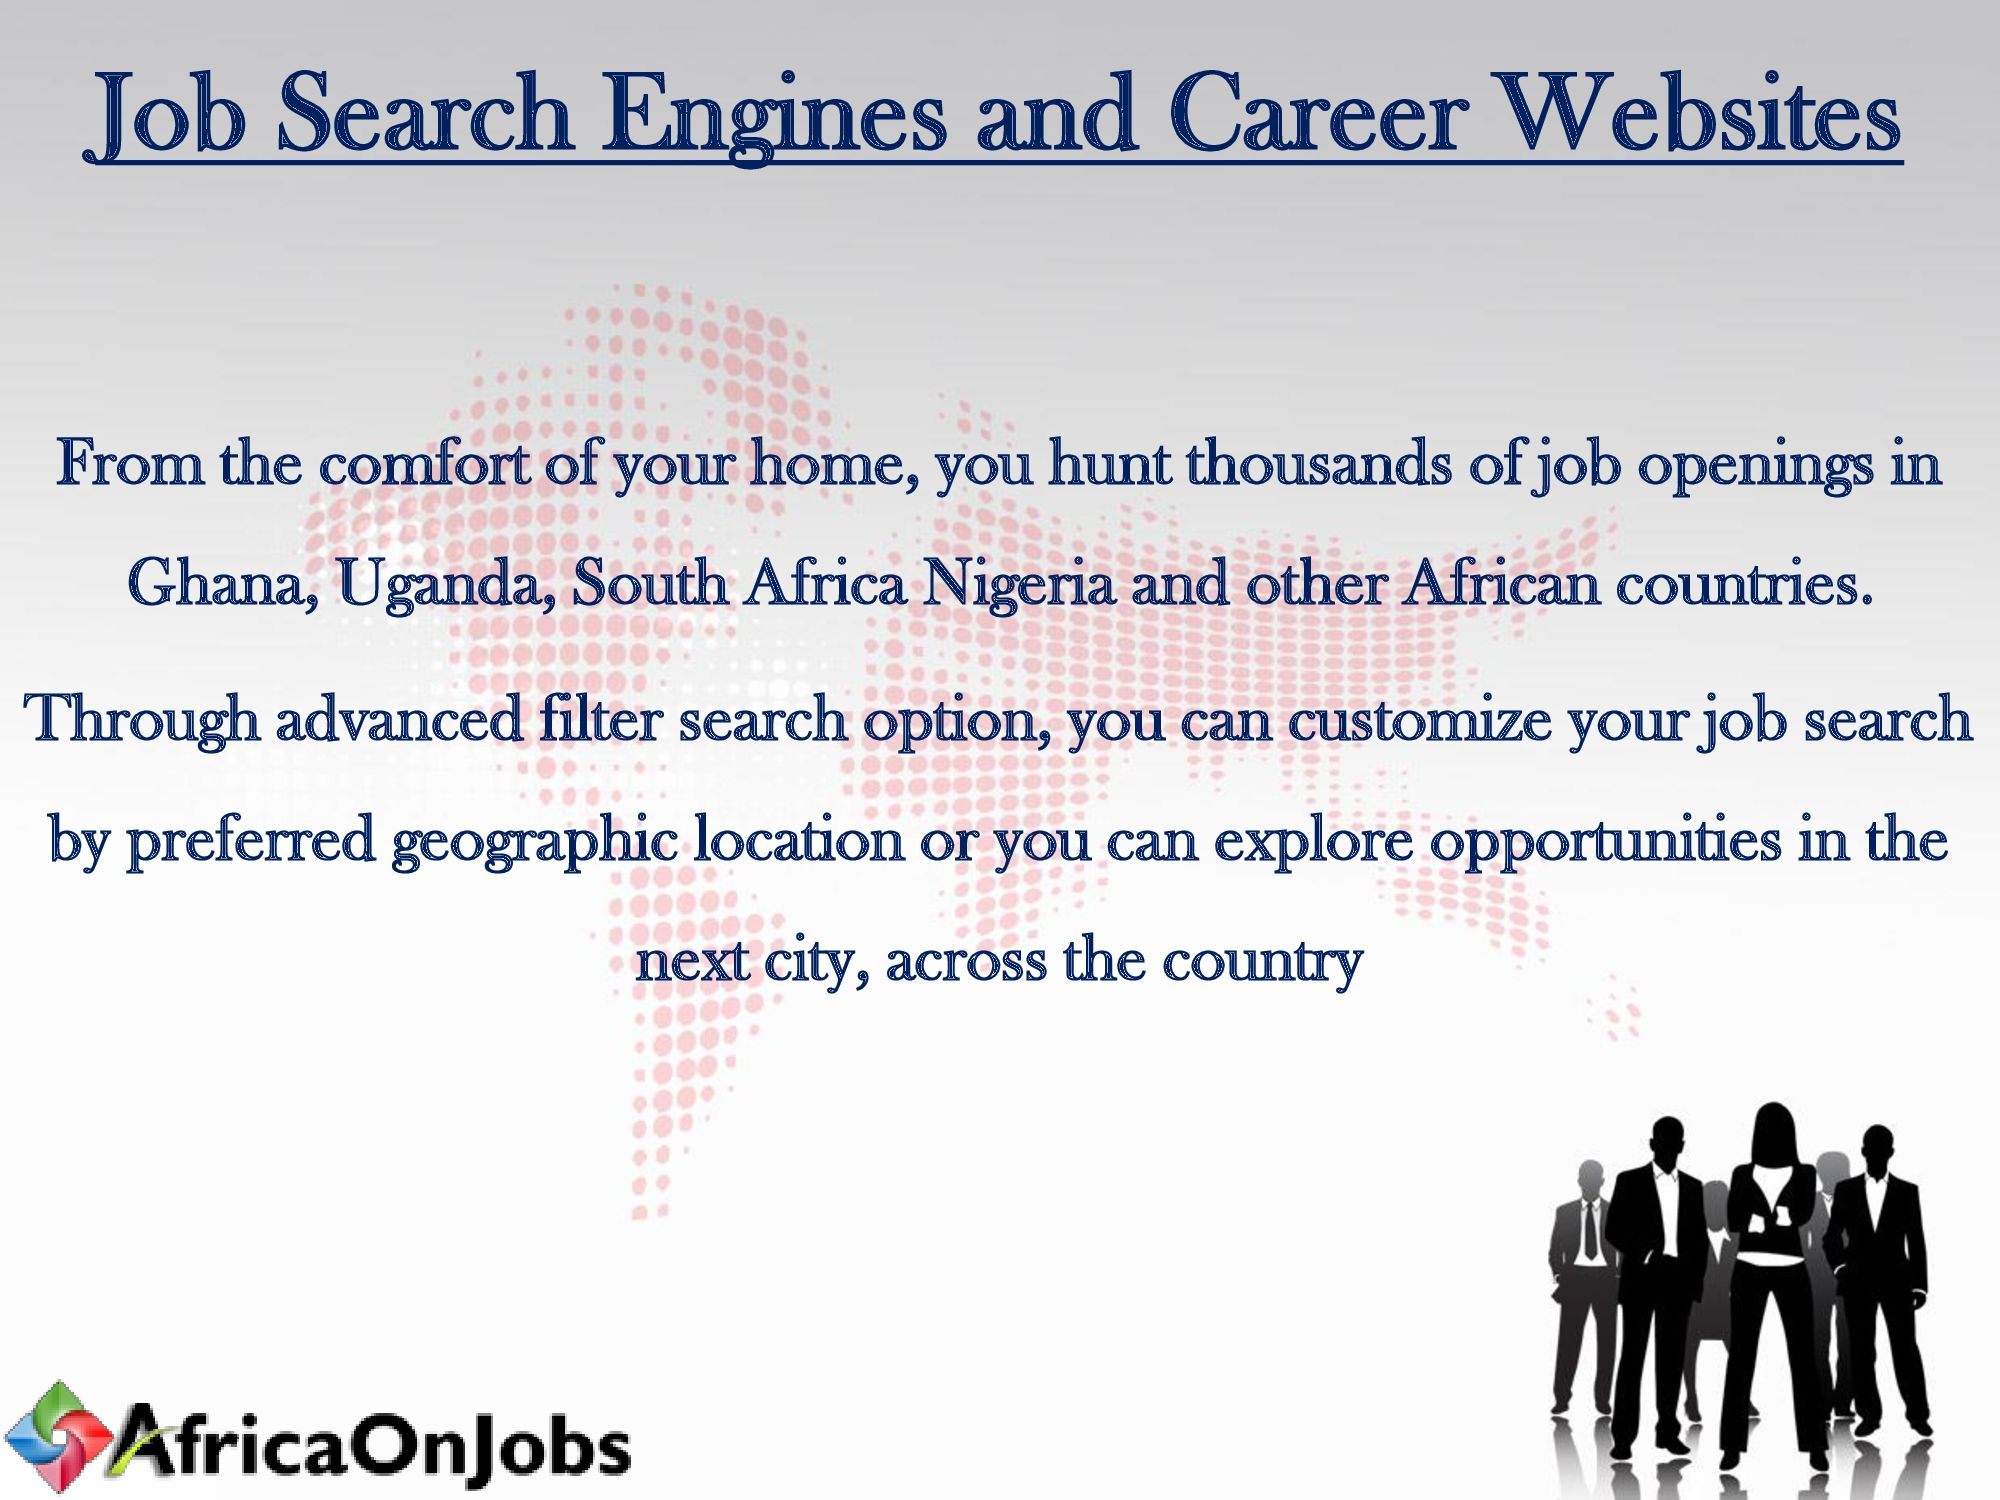 From The Comfort Of Your Home You Hunt Thousands Of Job Openings